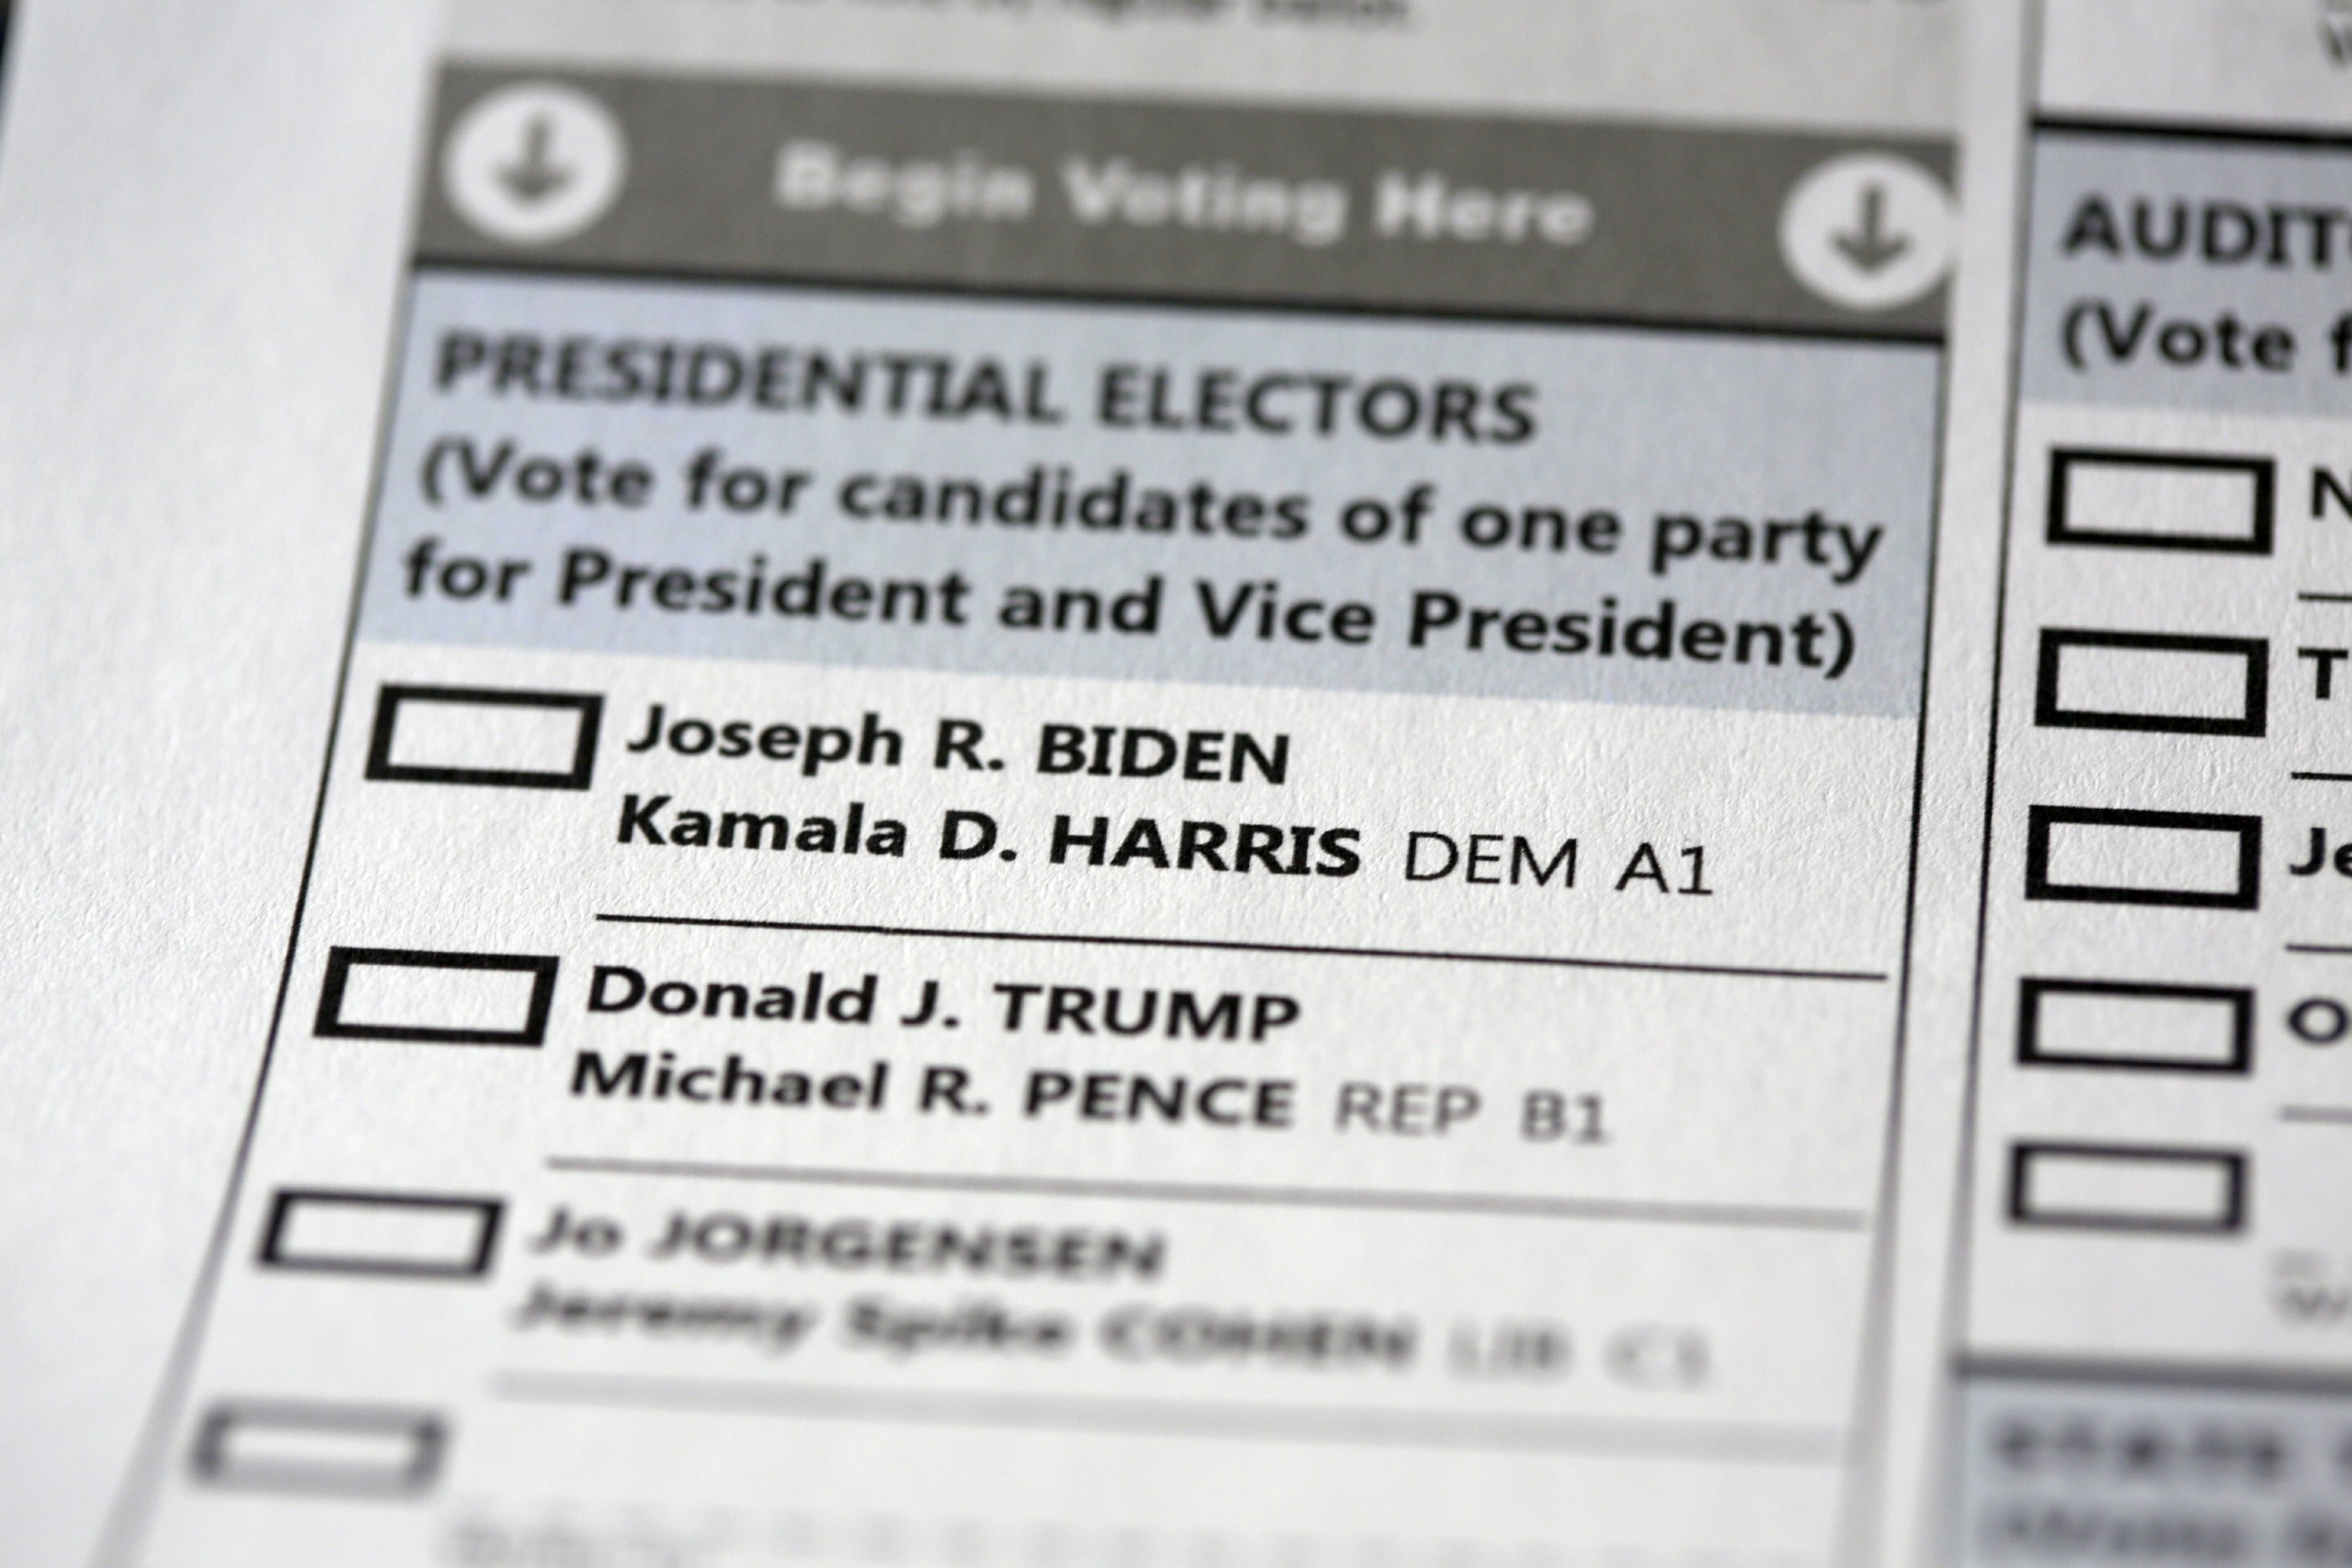 EXPLAINER: From the 2020 election, some new political terms